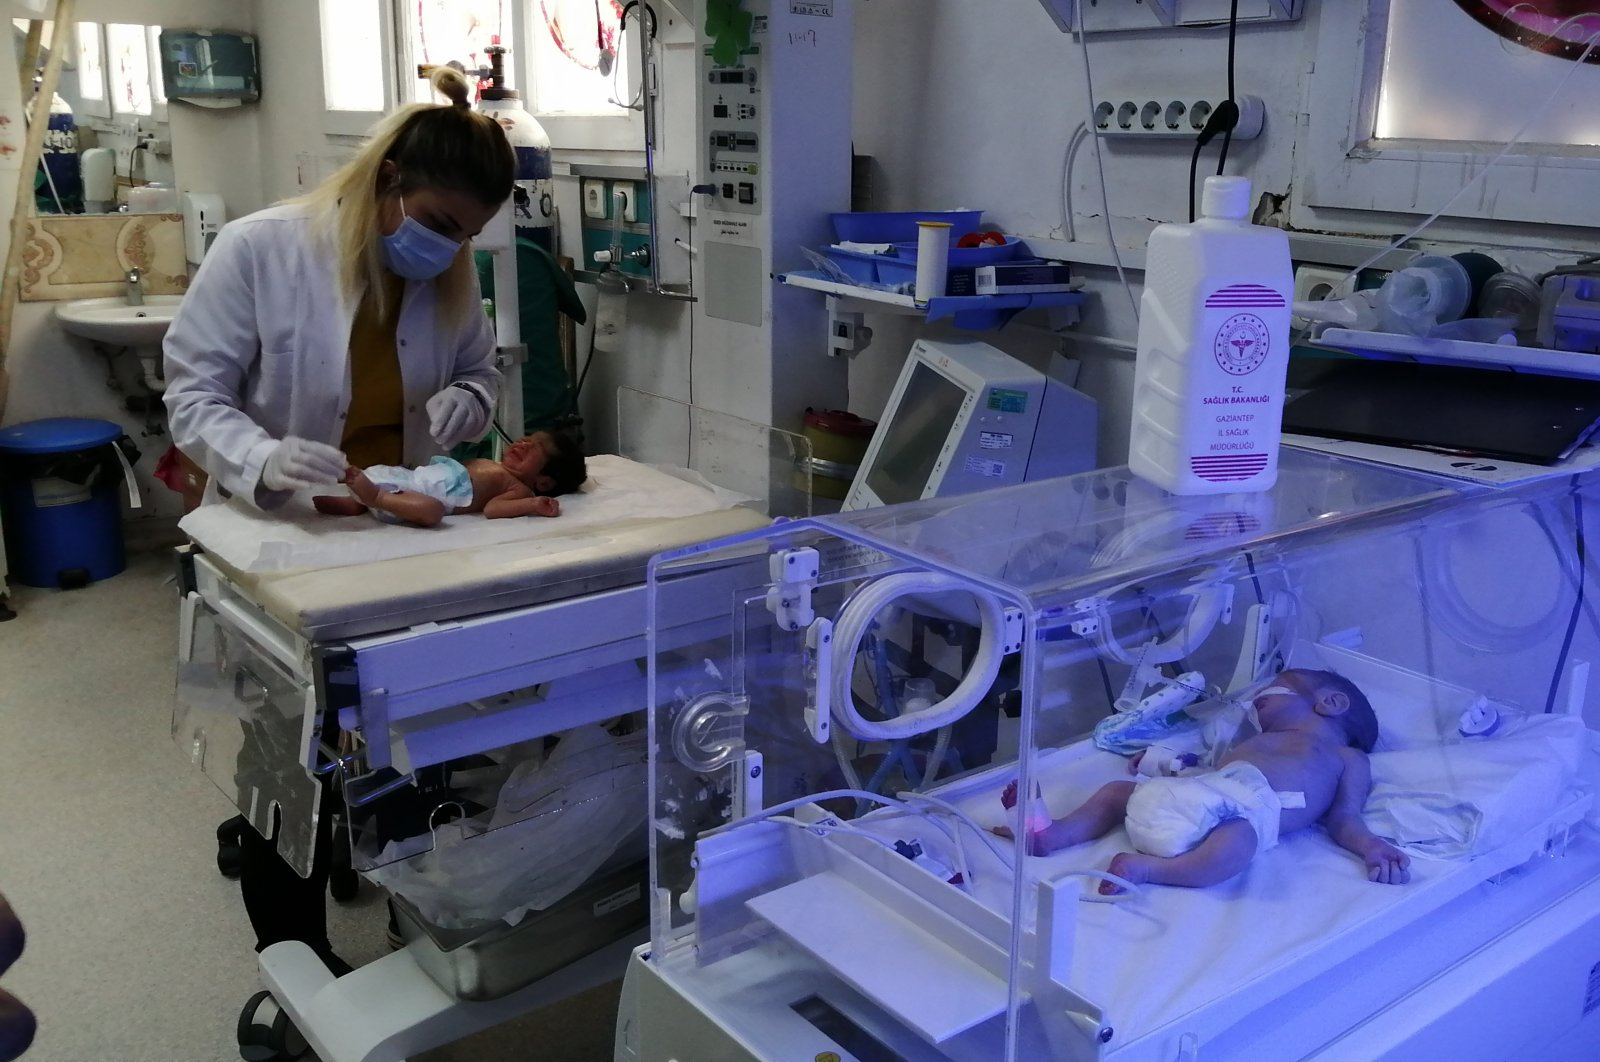 A health care worker attends the newborn babies at the hospital in Jarablus, Syria, Aug. 18, 2021. (AA PHOTO)